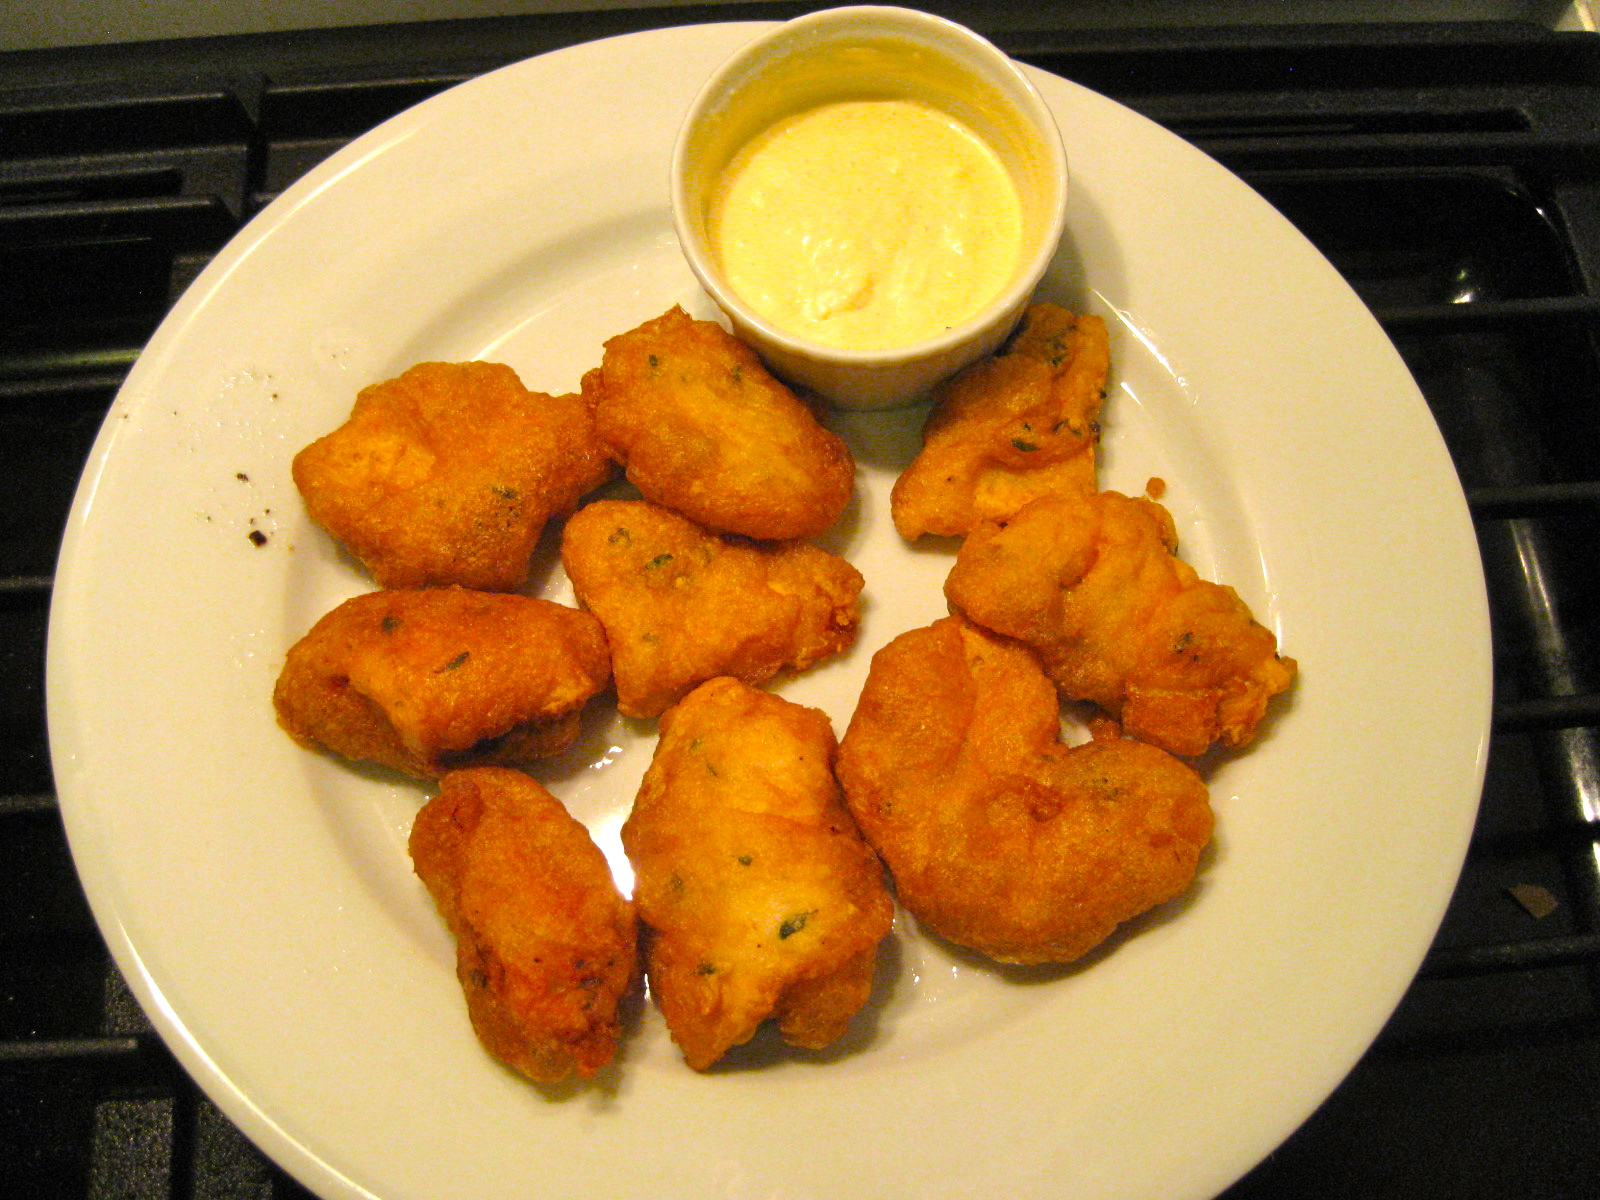 Emergency fish fry anniesdishlist for How to make fish fry batter